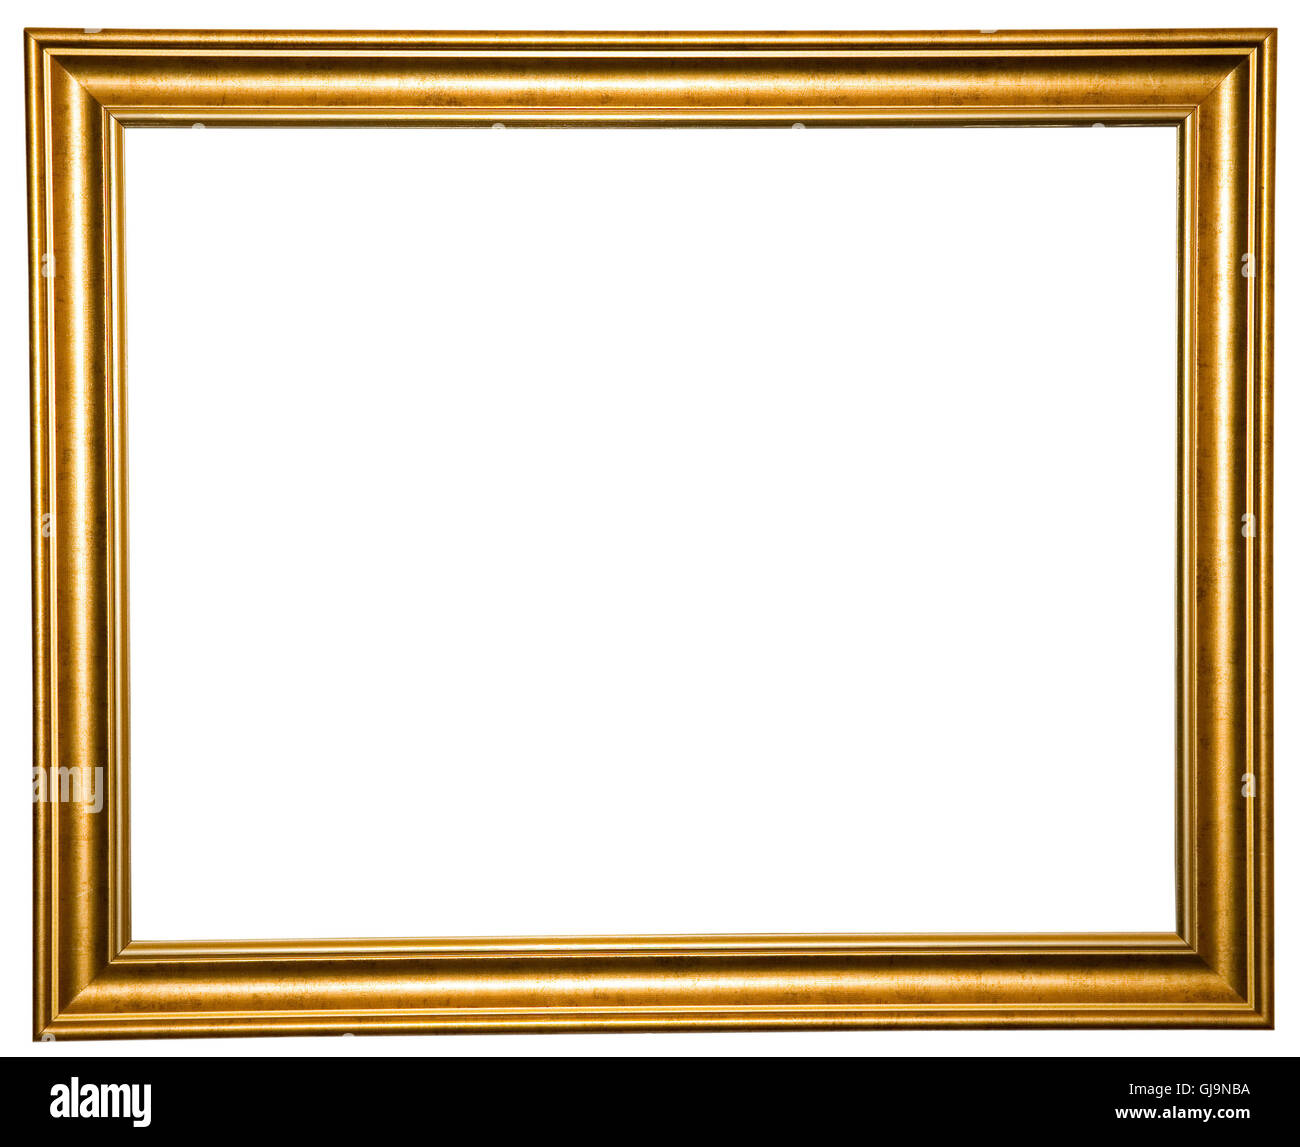 Masterpiece Frame Stock Photos & Masterpiece Frame Stock Images - Alamy